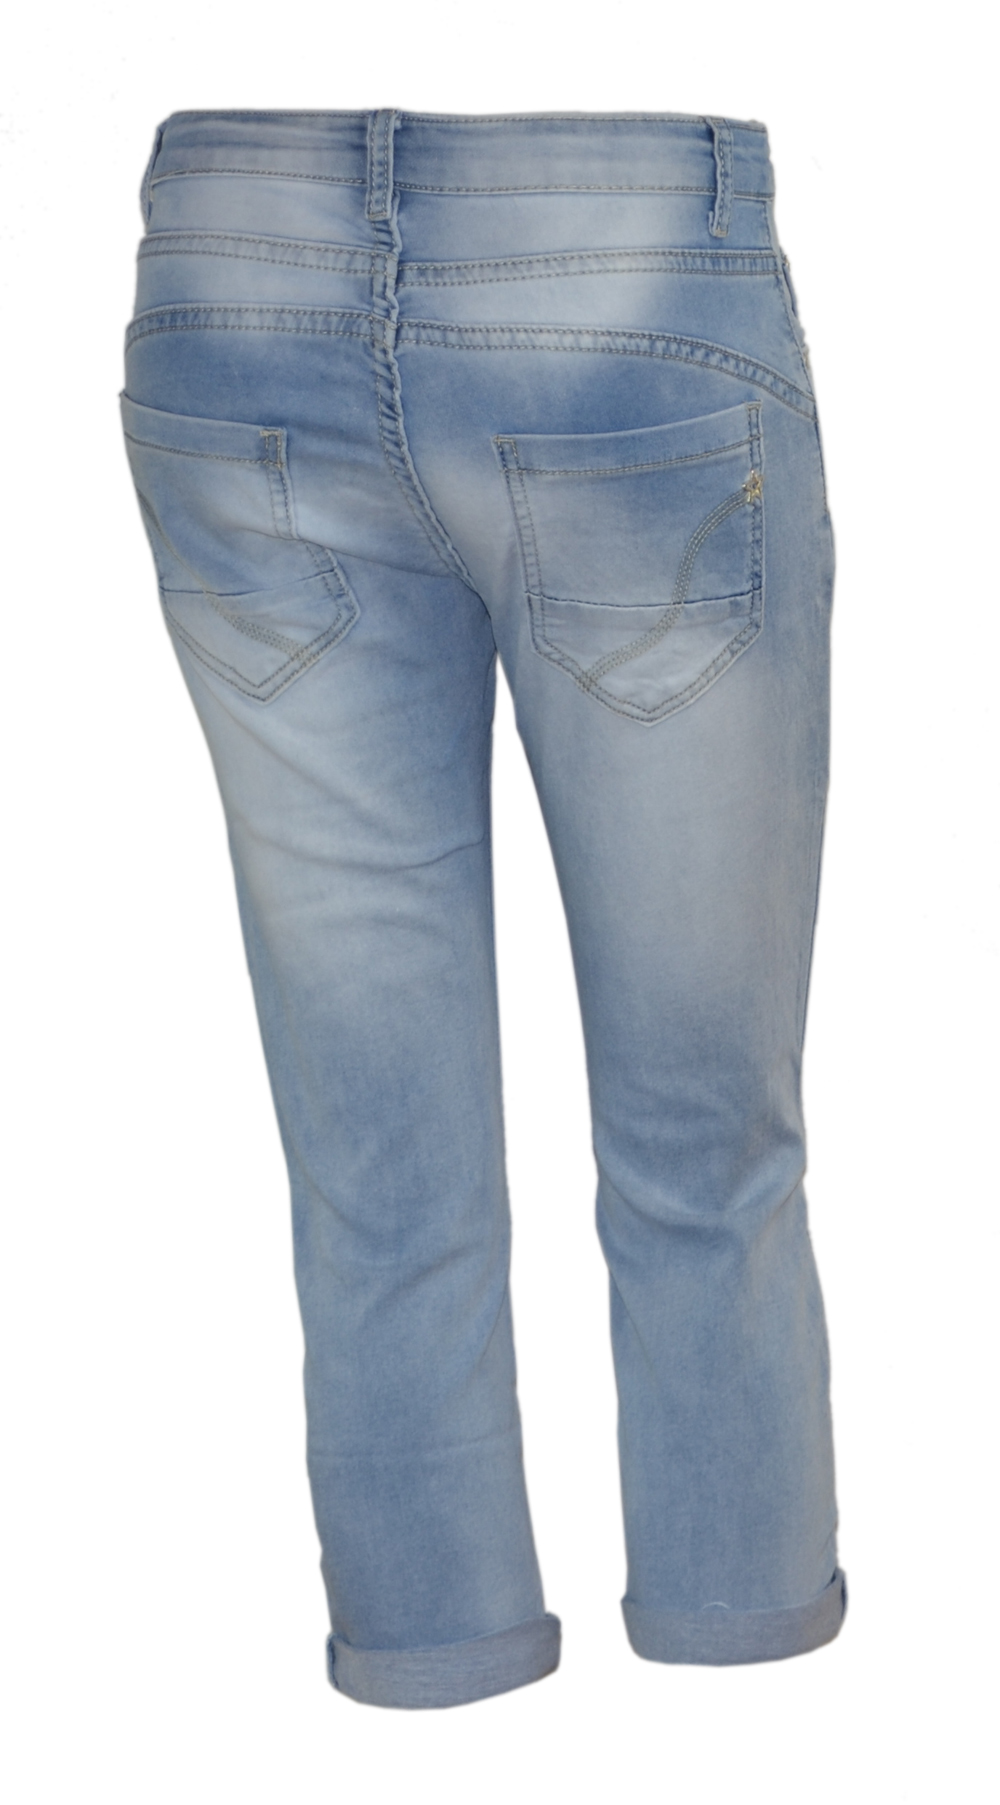 chicalondon-jeans-1833C